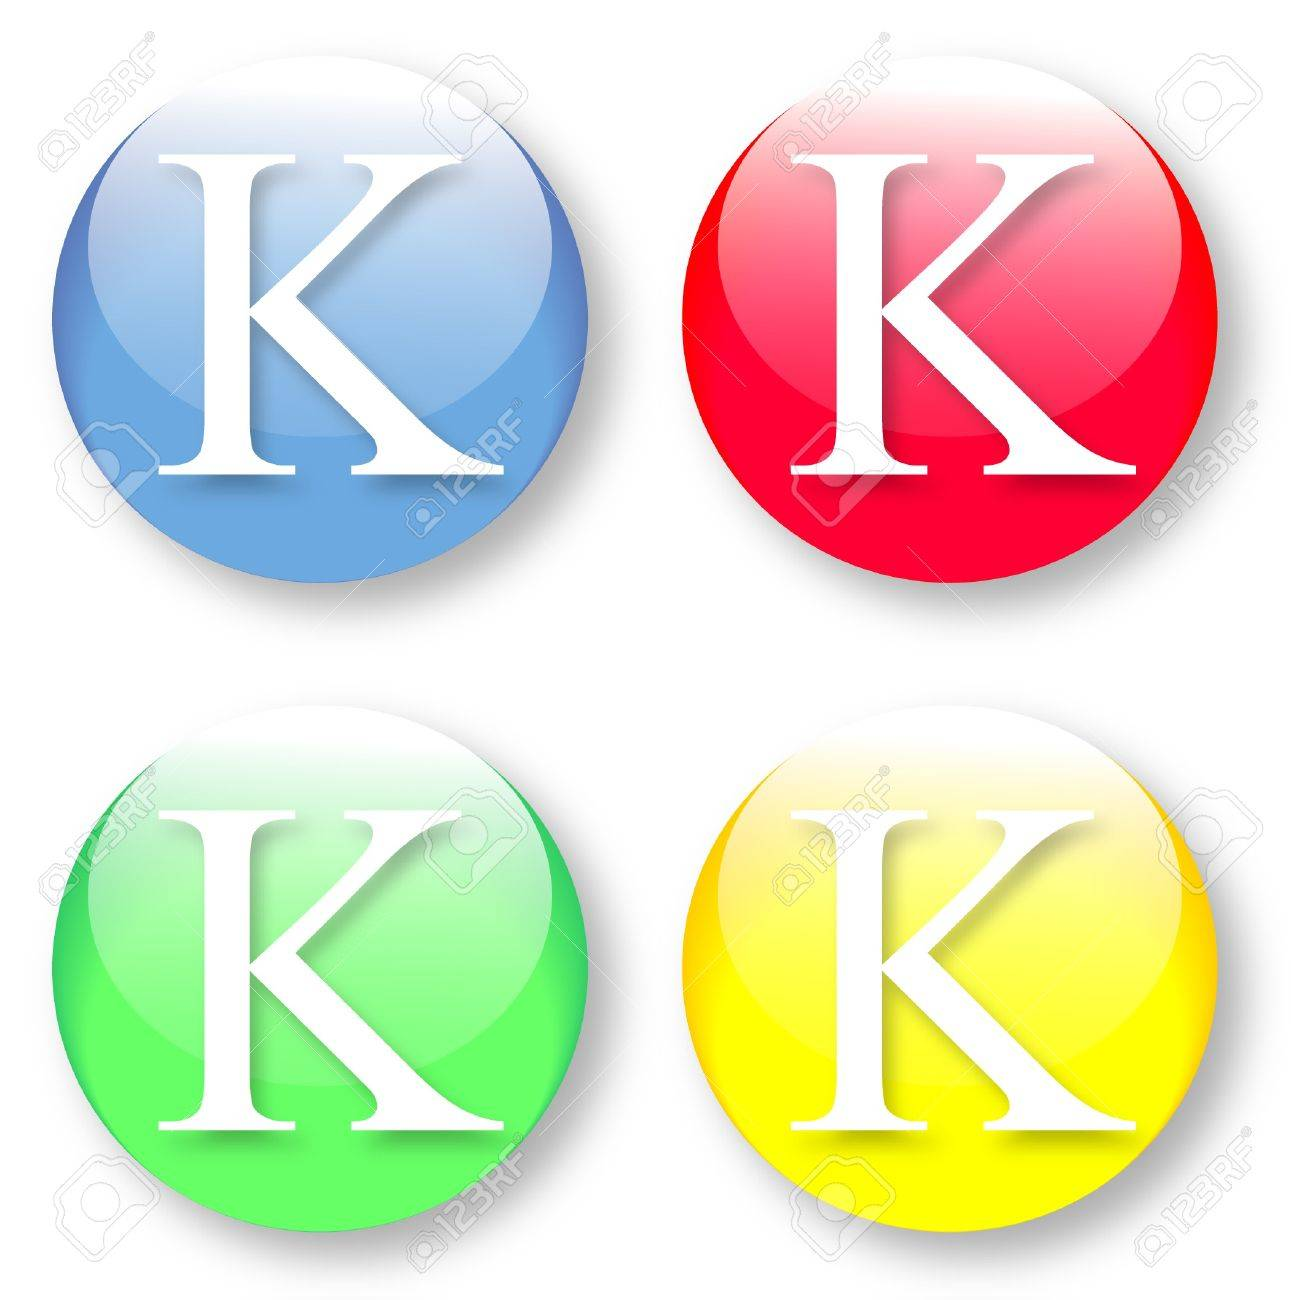 Letter K Times New Roman font type icons set on blue, red, green and yellow glassy buttons isolated on white background  Vector illustration may be resized to any scale without data losses Stock Vector - 19912955